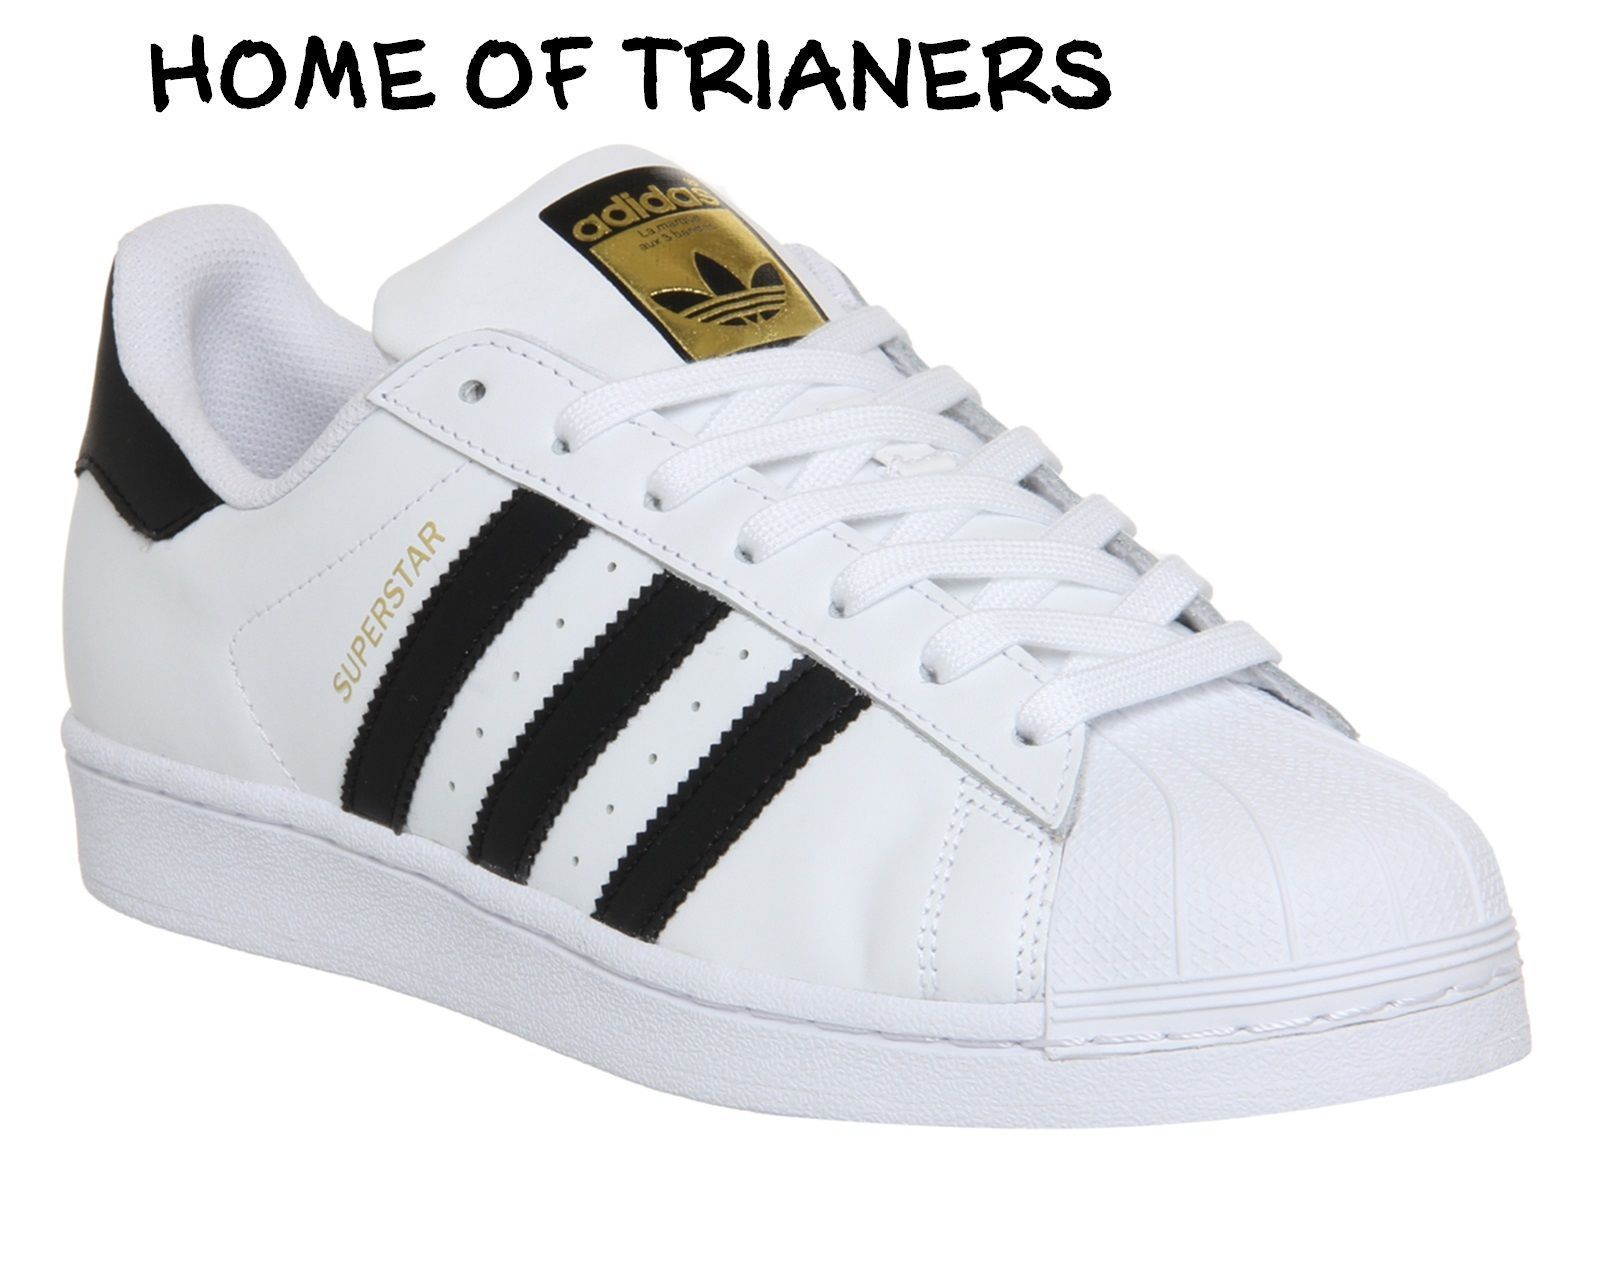 3295333b67040d Adidas Super Star (Gs) White Black Gold Women/Boys/Girls Trainers All